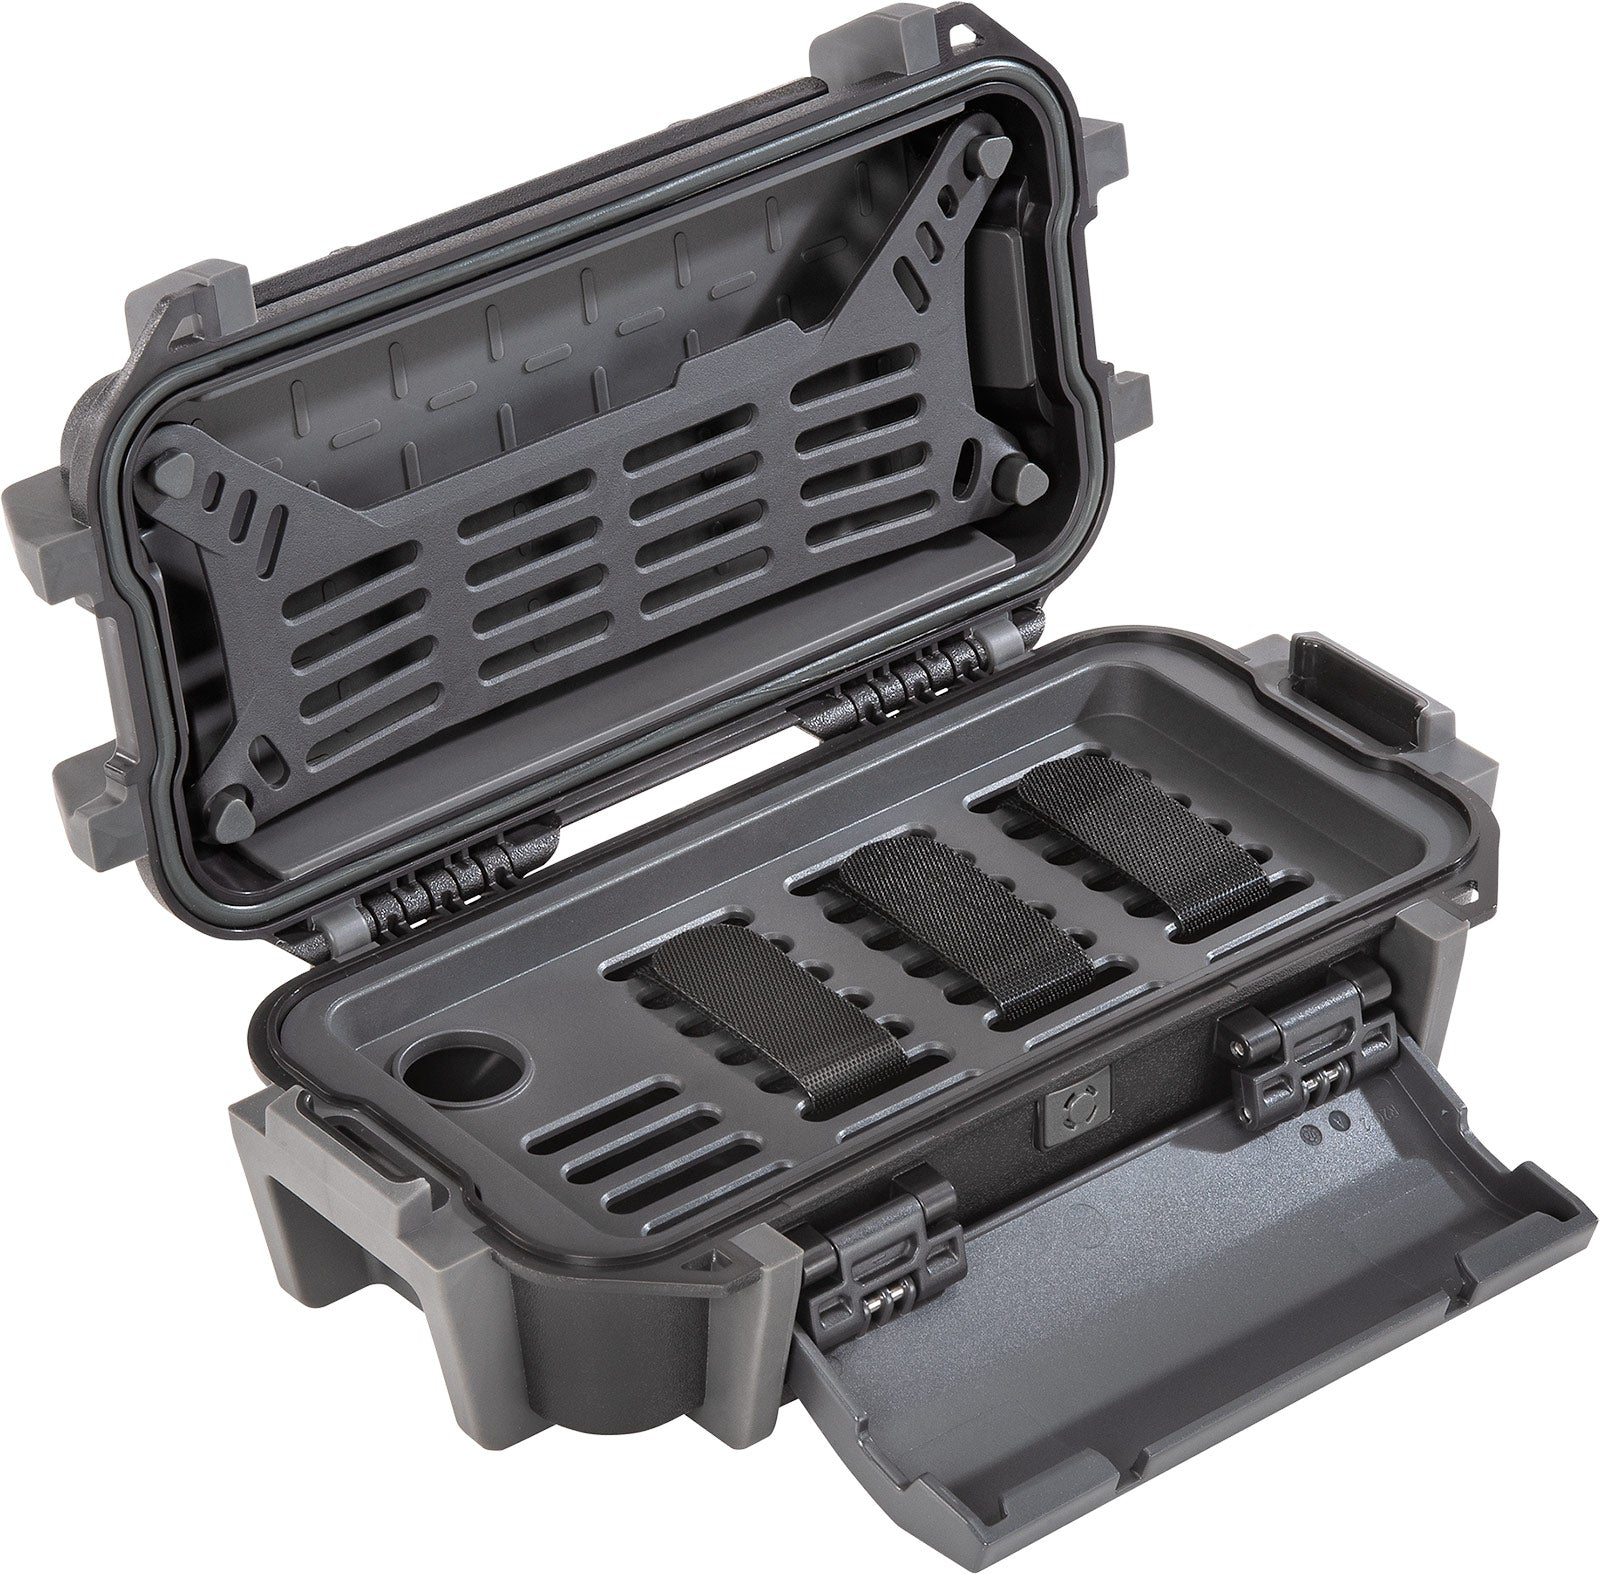 Pelican - R20 Personal Utility Ruck Case (Black)